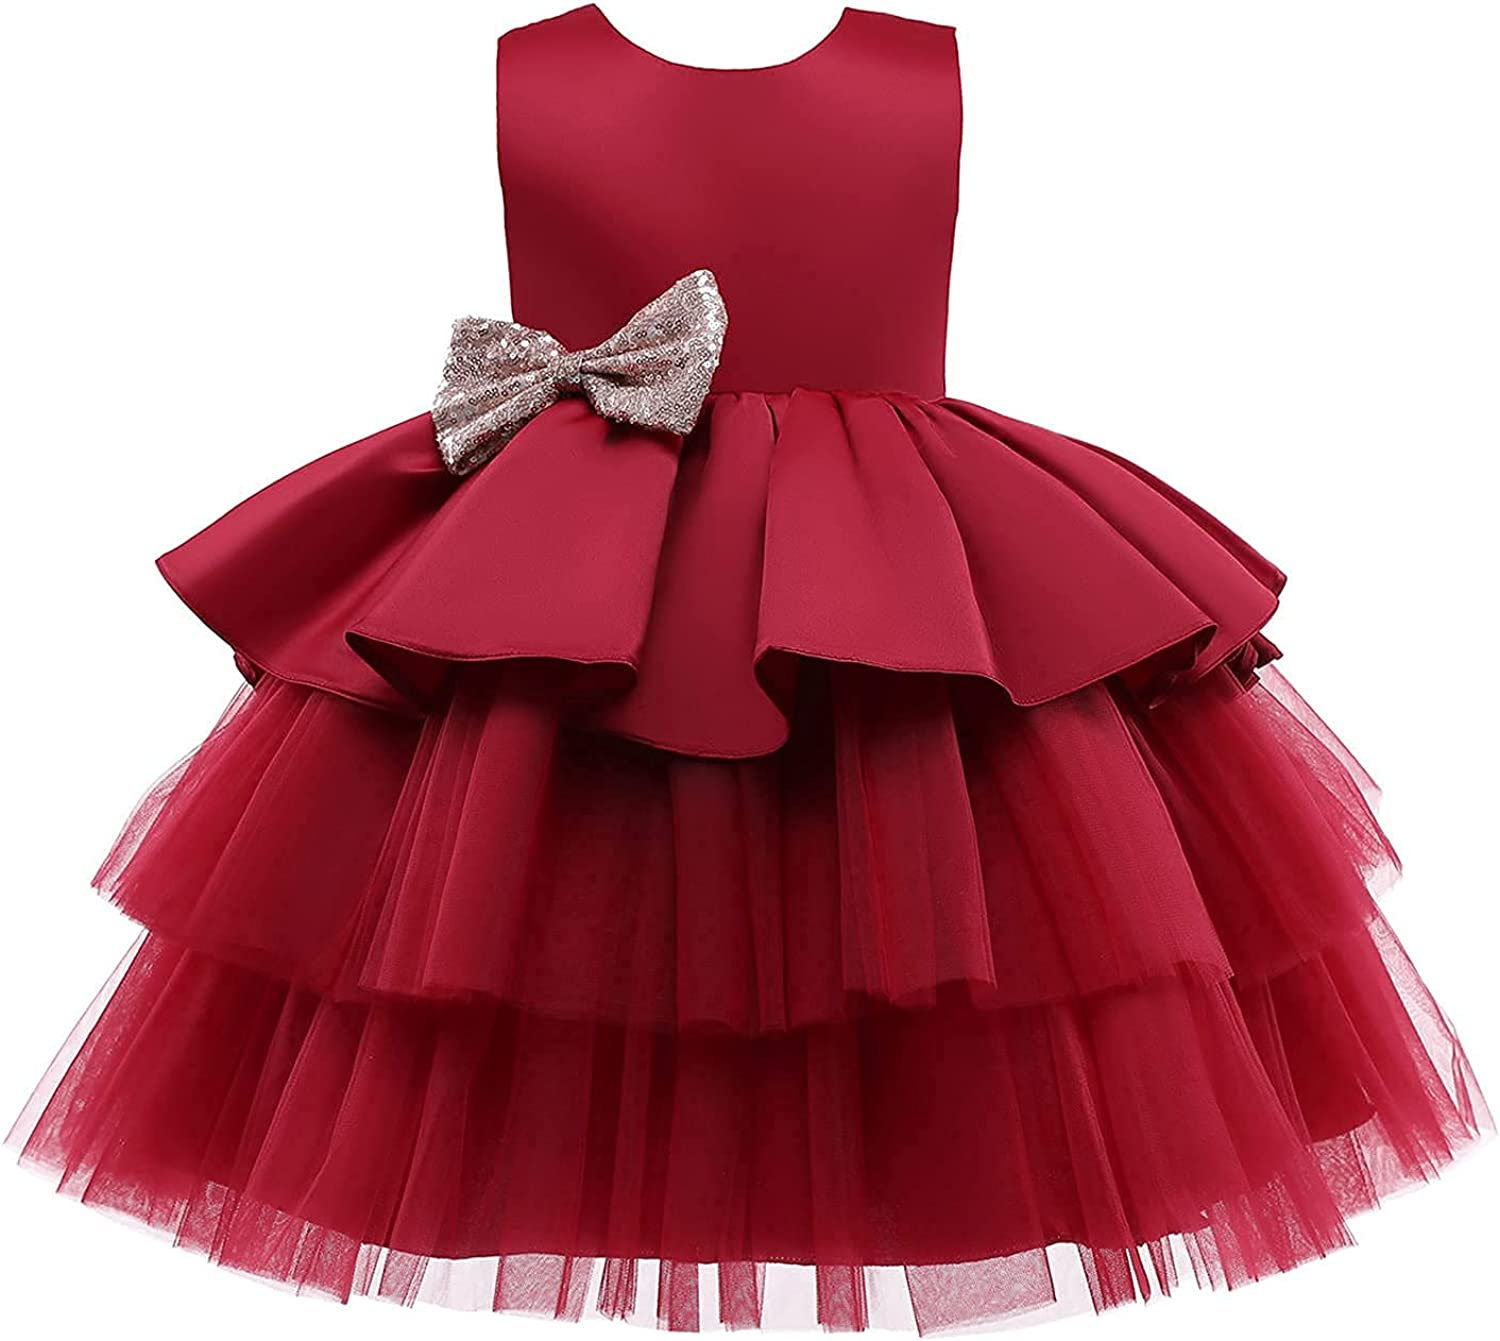 Nileafes Genuine Free Shipping Toddler Baby Girls Dress Tutu Dresses High quality Party Dr Princess